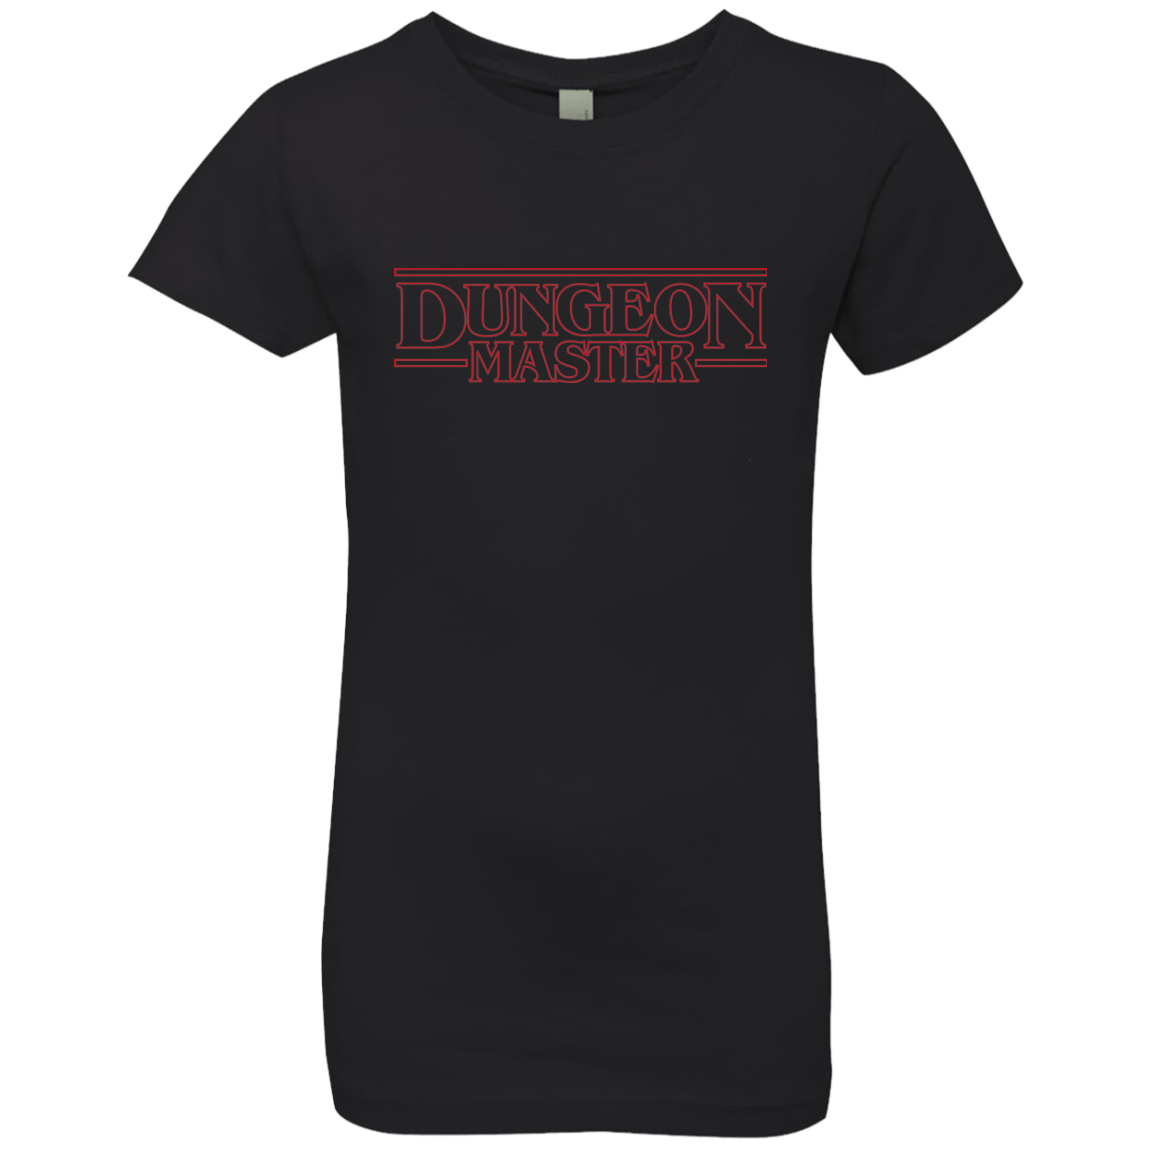 T-Shirts Black / YXS Dungeon Master Girls Premium T-Shirt